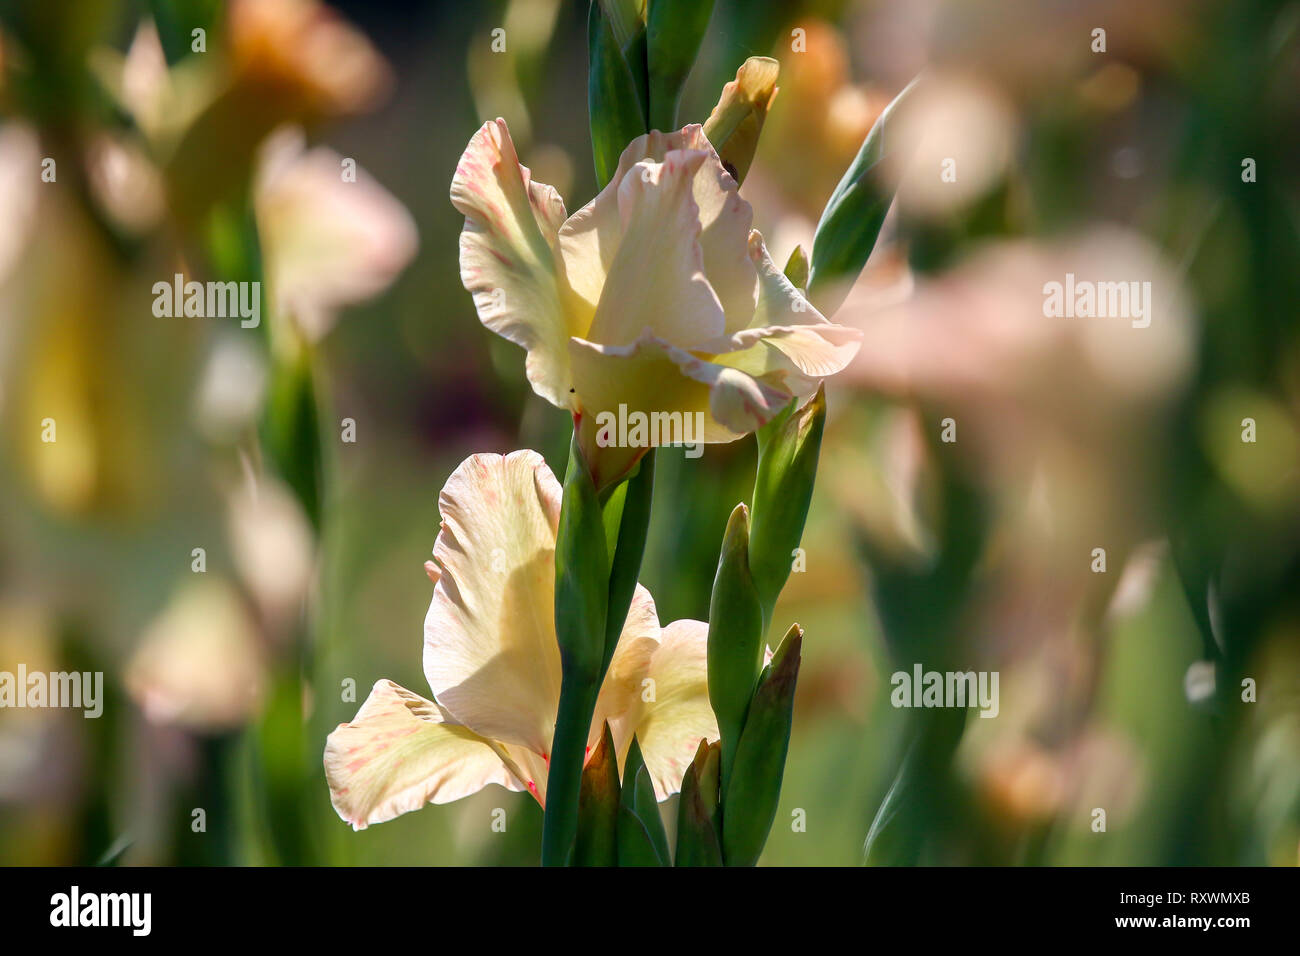 Gentle pink gladiolus flowers blooming in beautiful garden. Gladiolus is plant of the iris family, with sword-shaped leaves and spikes of brightly col - Stock Image